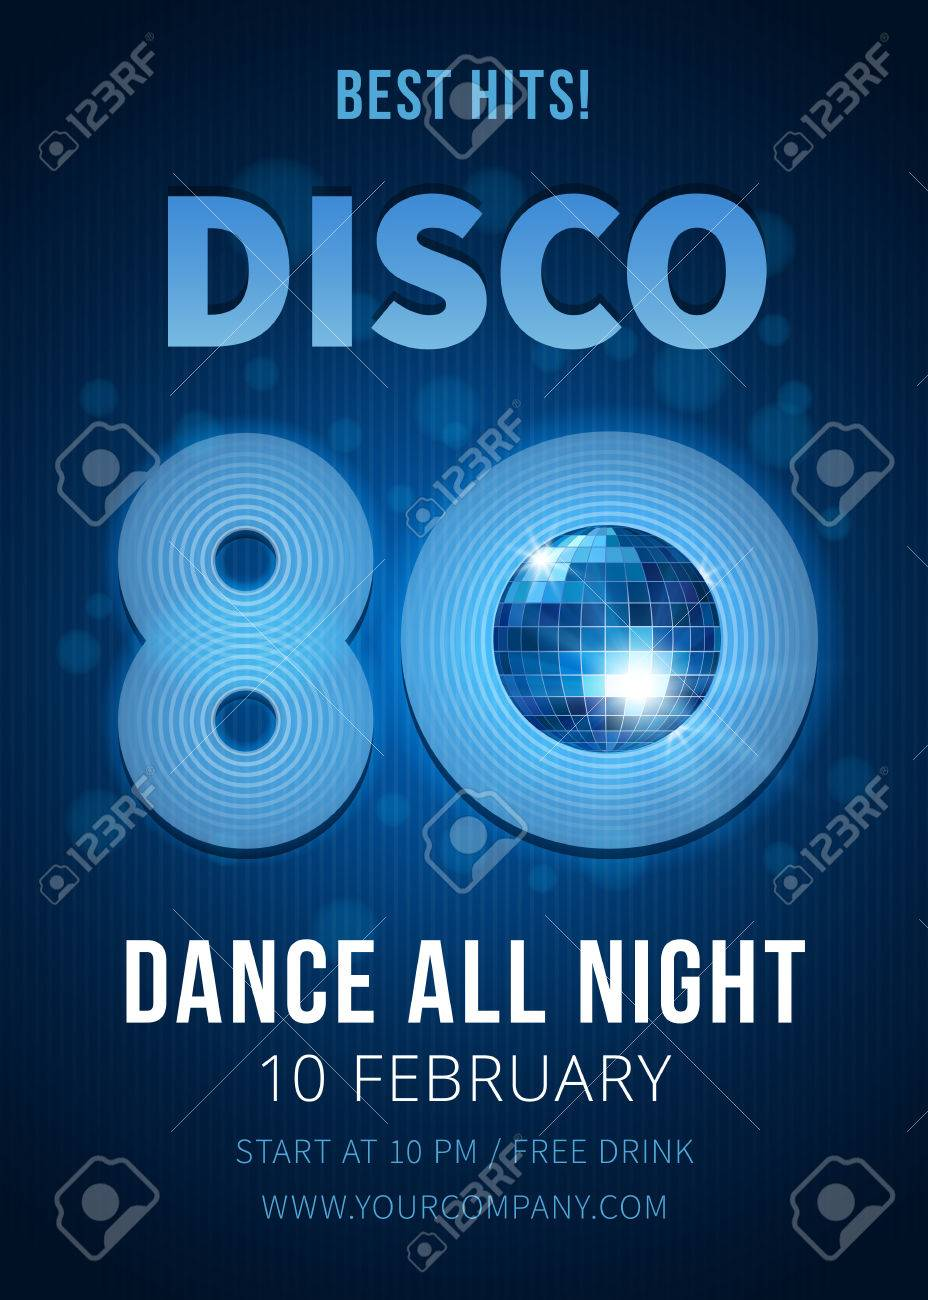 Disco party  Best hits of the 80s